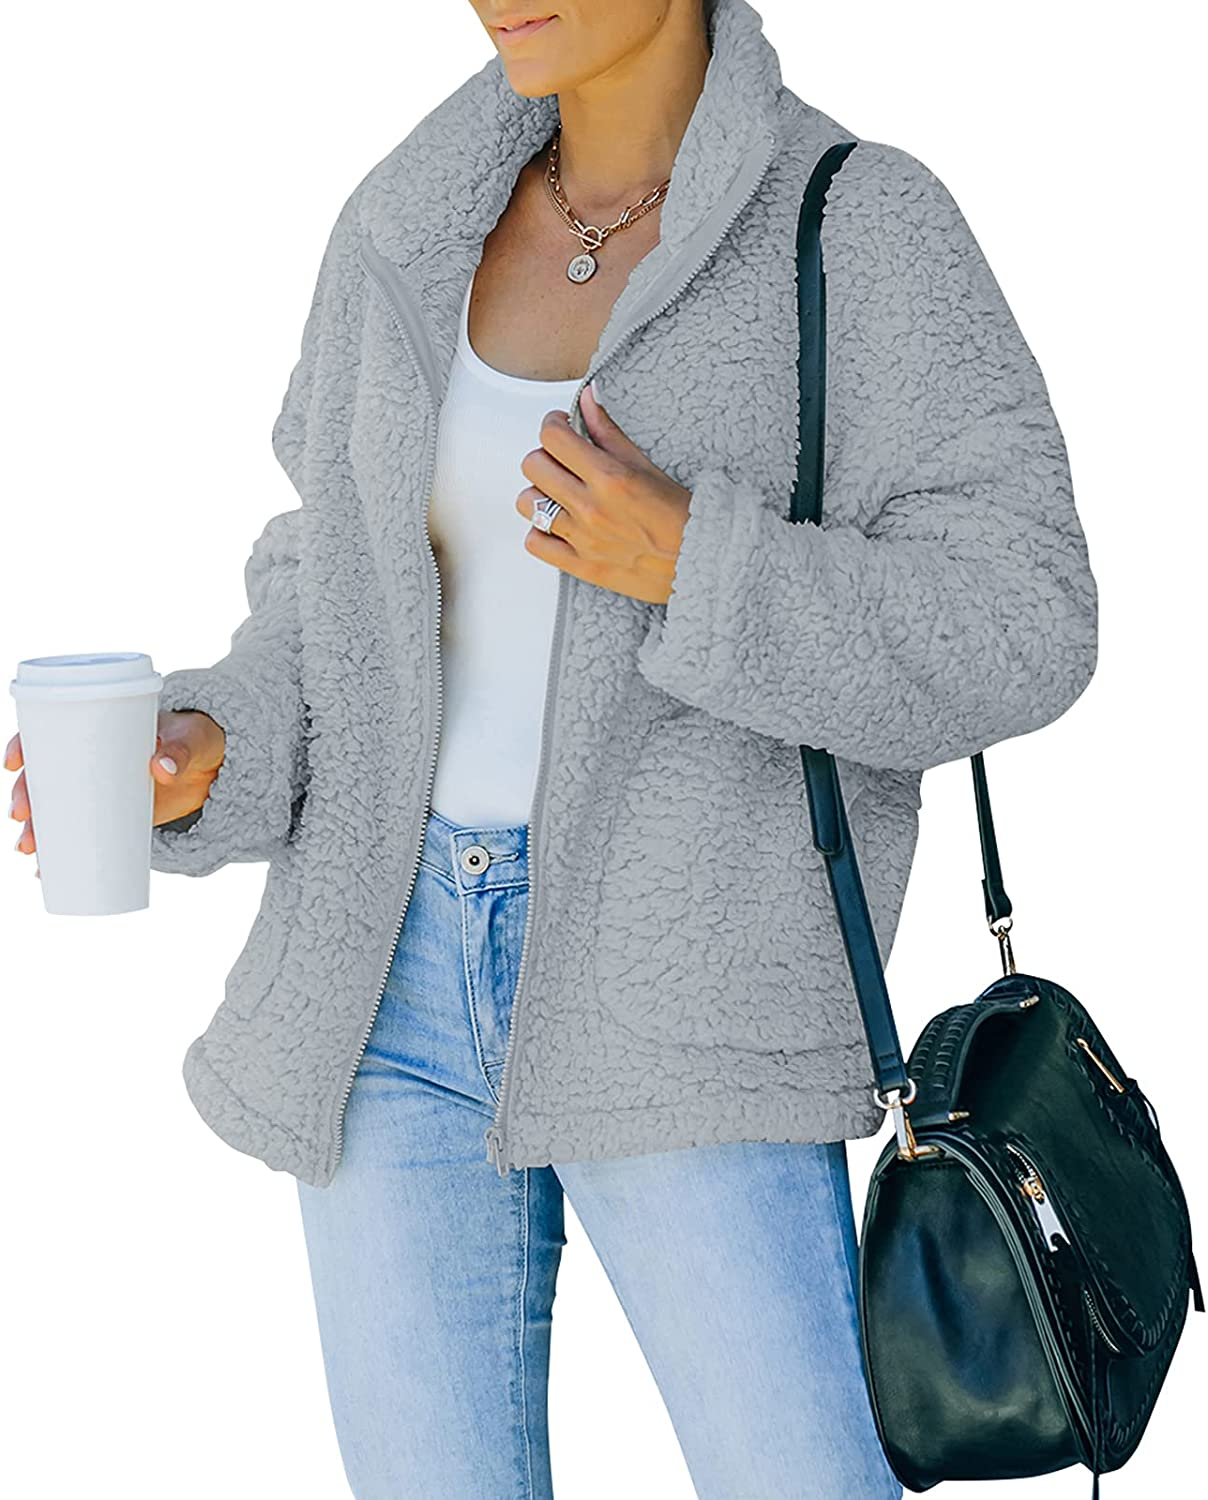 POTANY Outlet Long Beach Mall ☆ Free Shipping Women's Solid Stand Collar Long Full Fl Zip Sherpa Sleeve